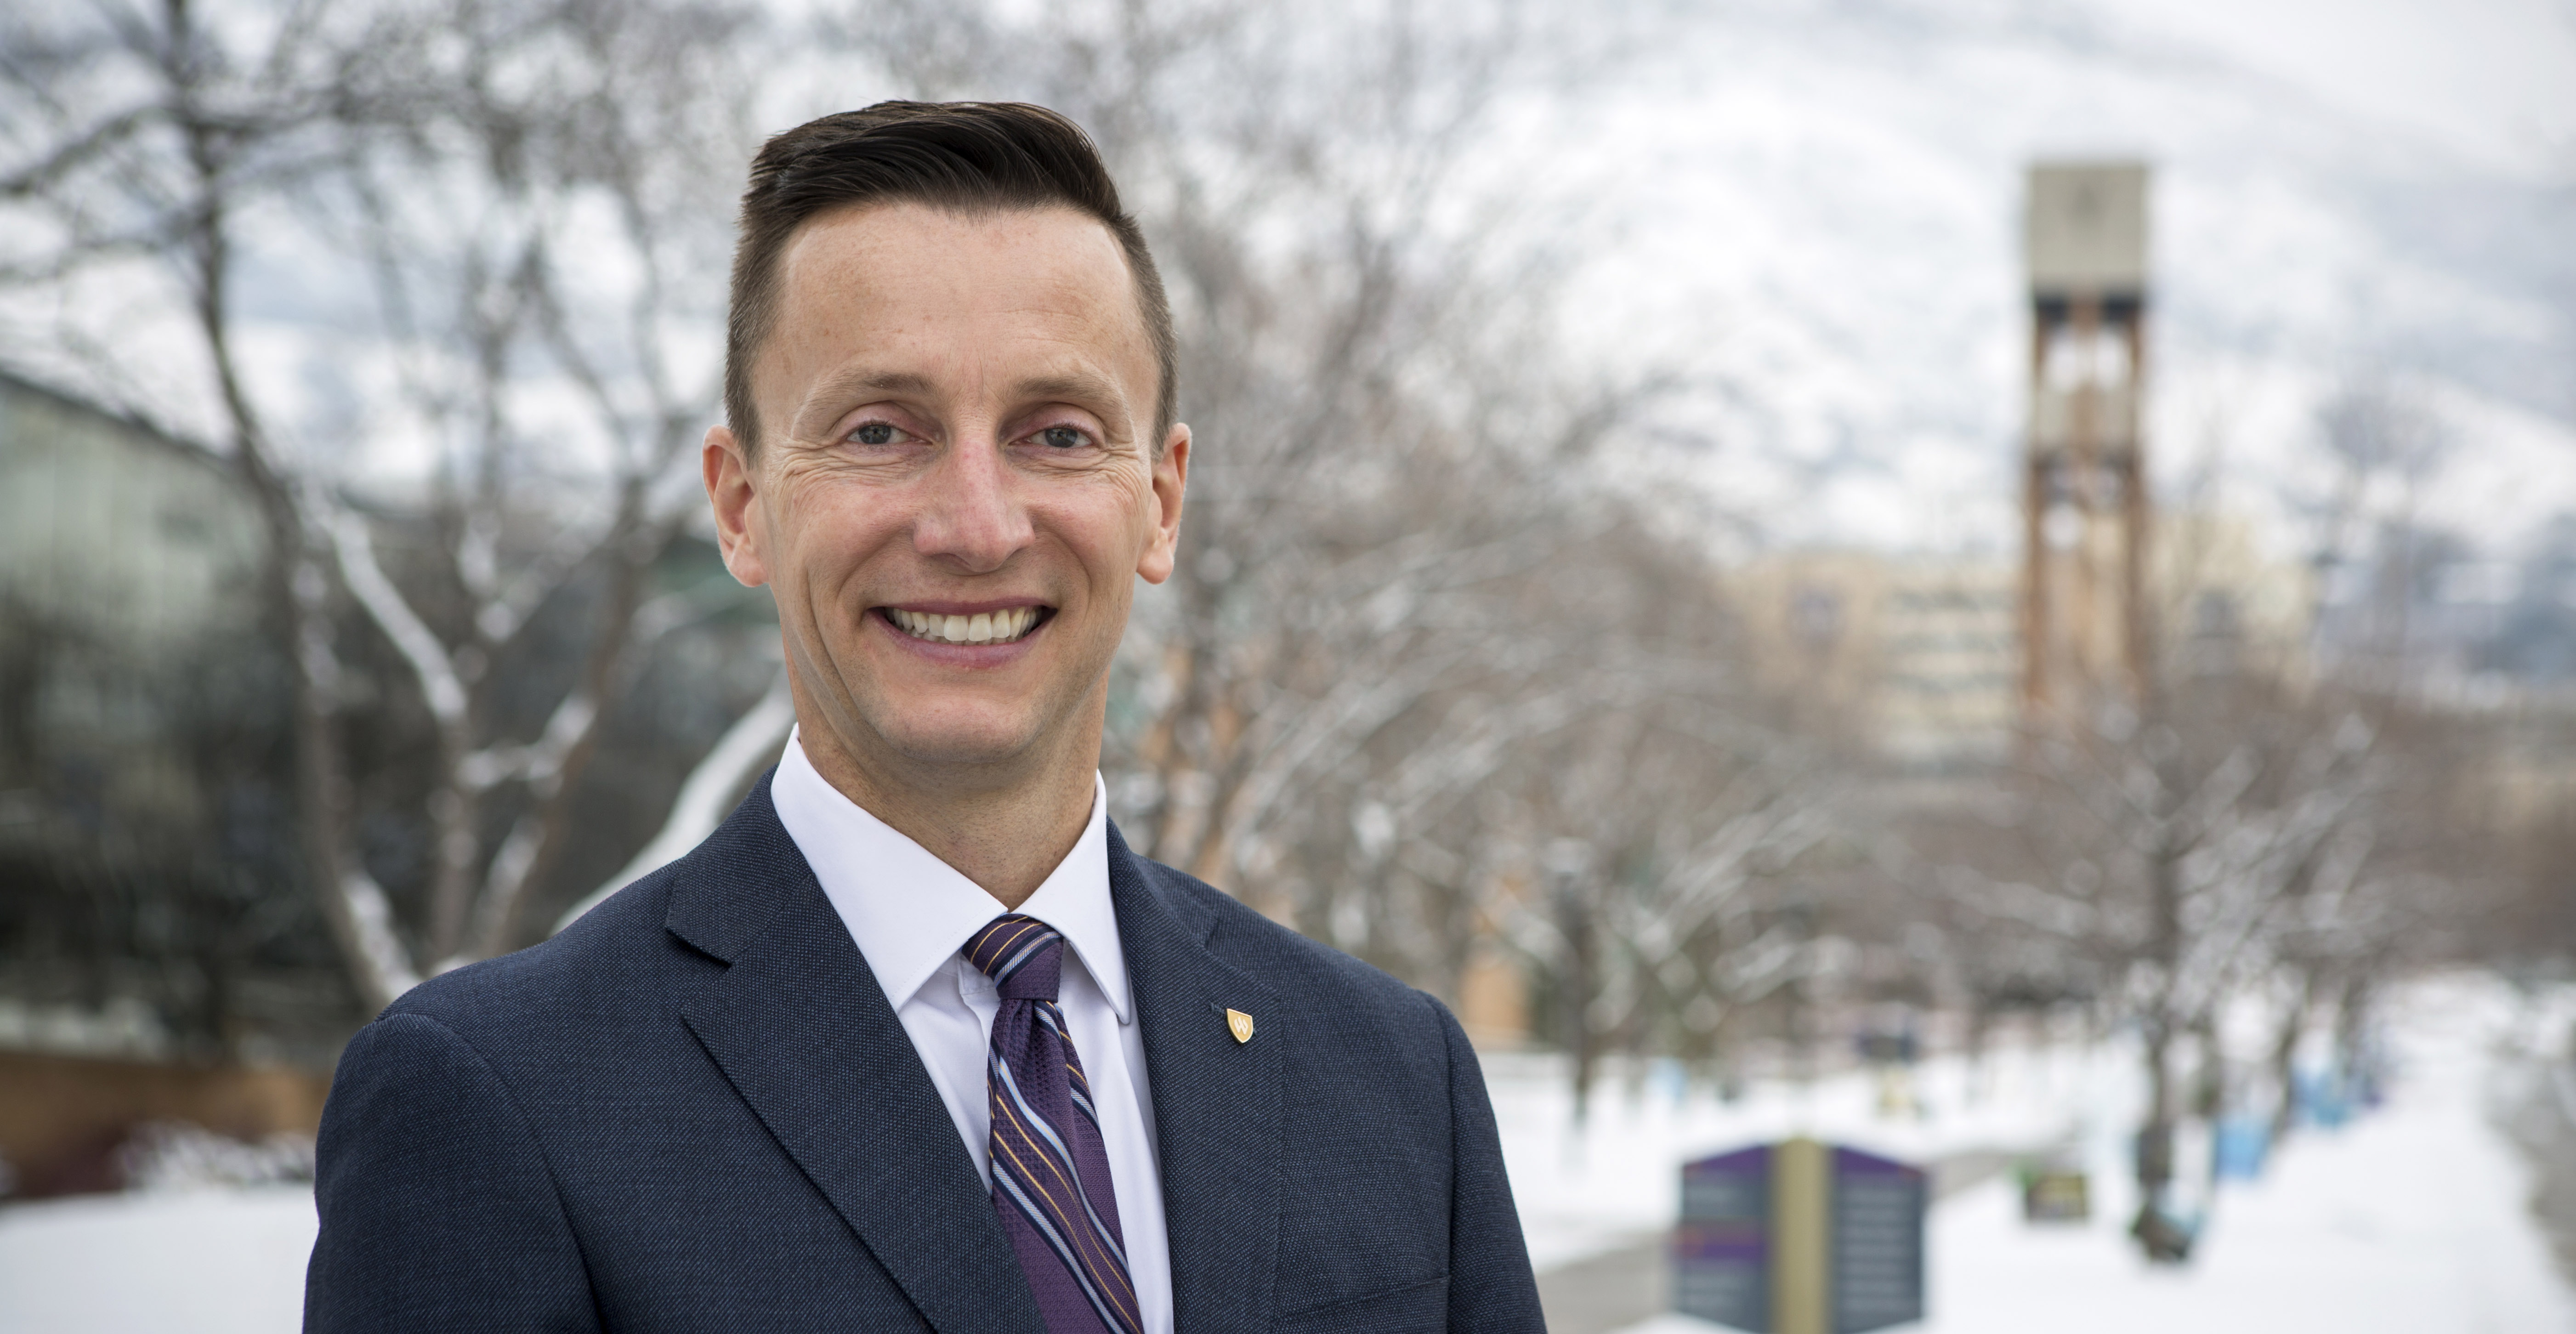 Weber State University president candidate Brad Mortenson. December 5, 2018. Photo by Benjamin Zack